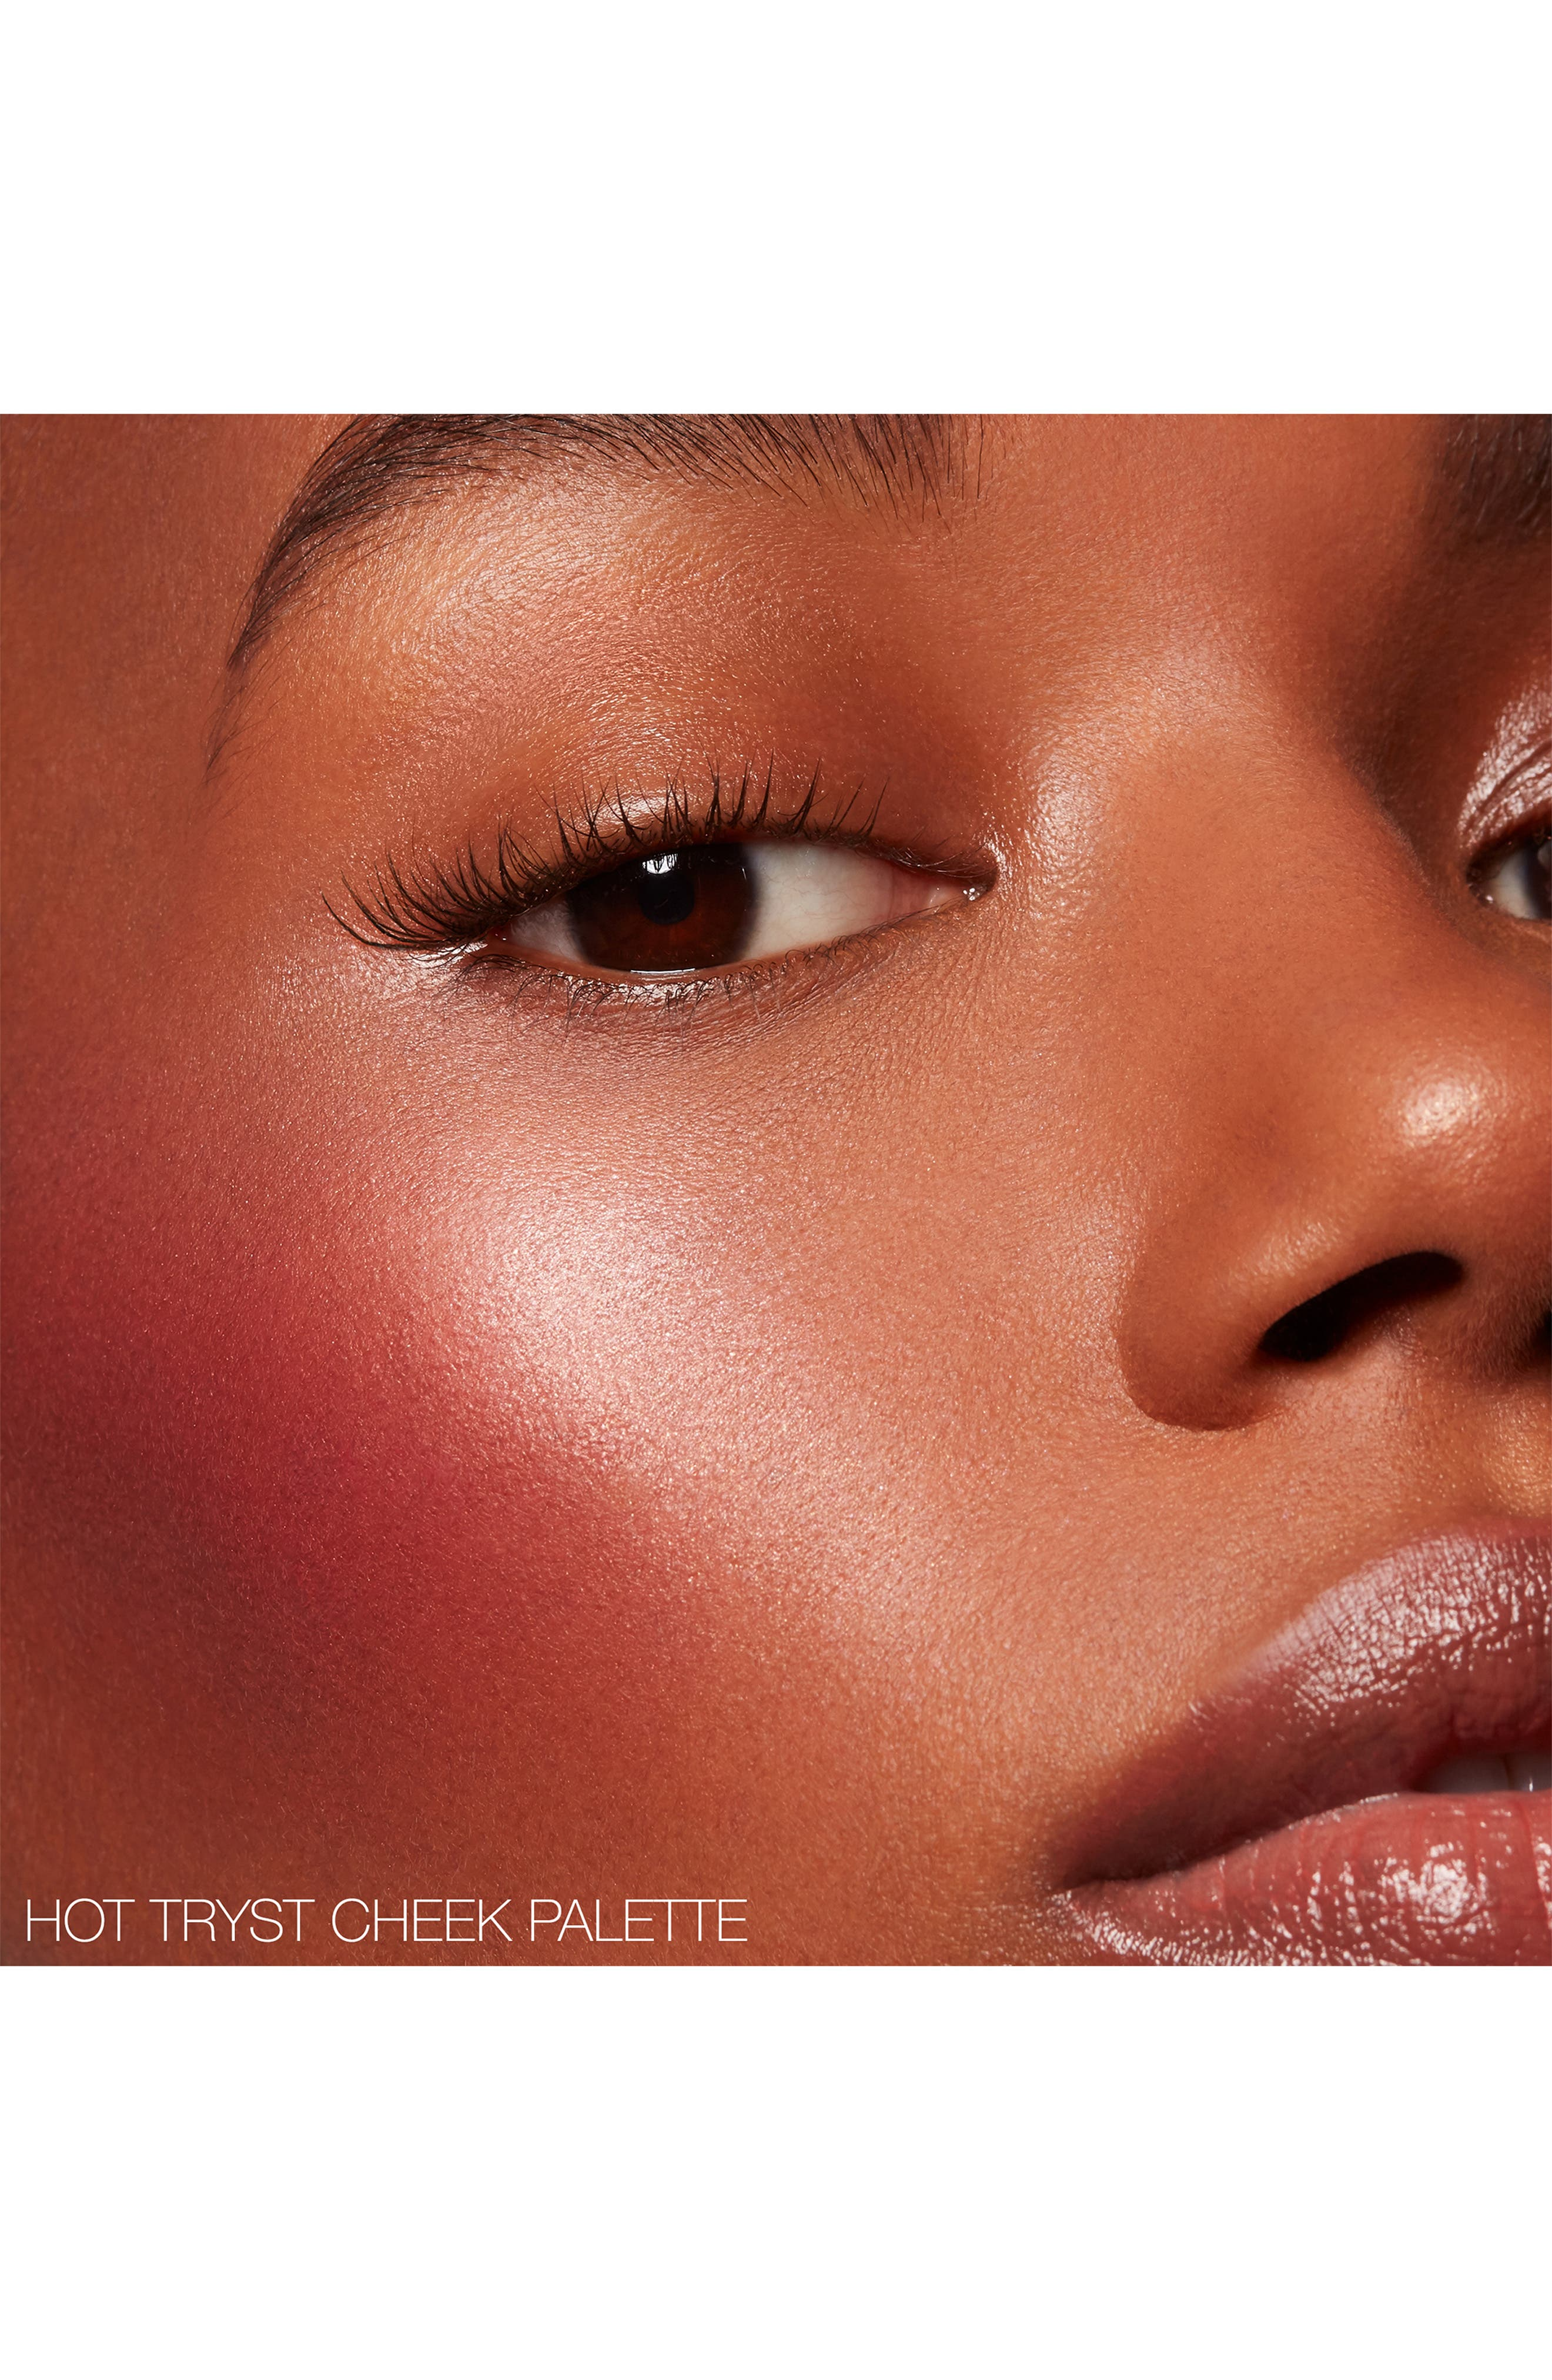 Hot Tryst Cheek Palette,                             Alternate thumbnail 2, color,                             NO COLOR